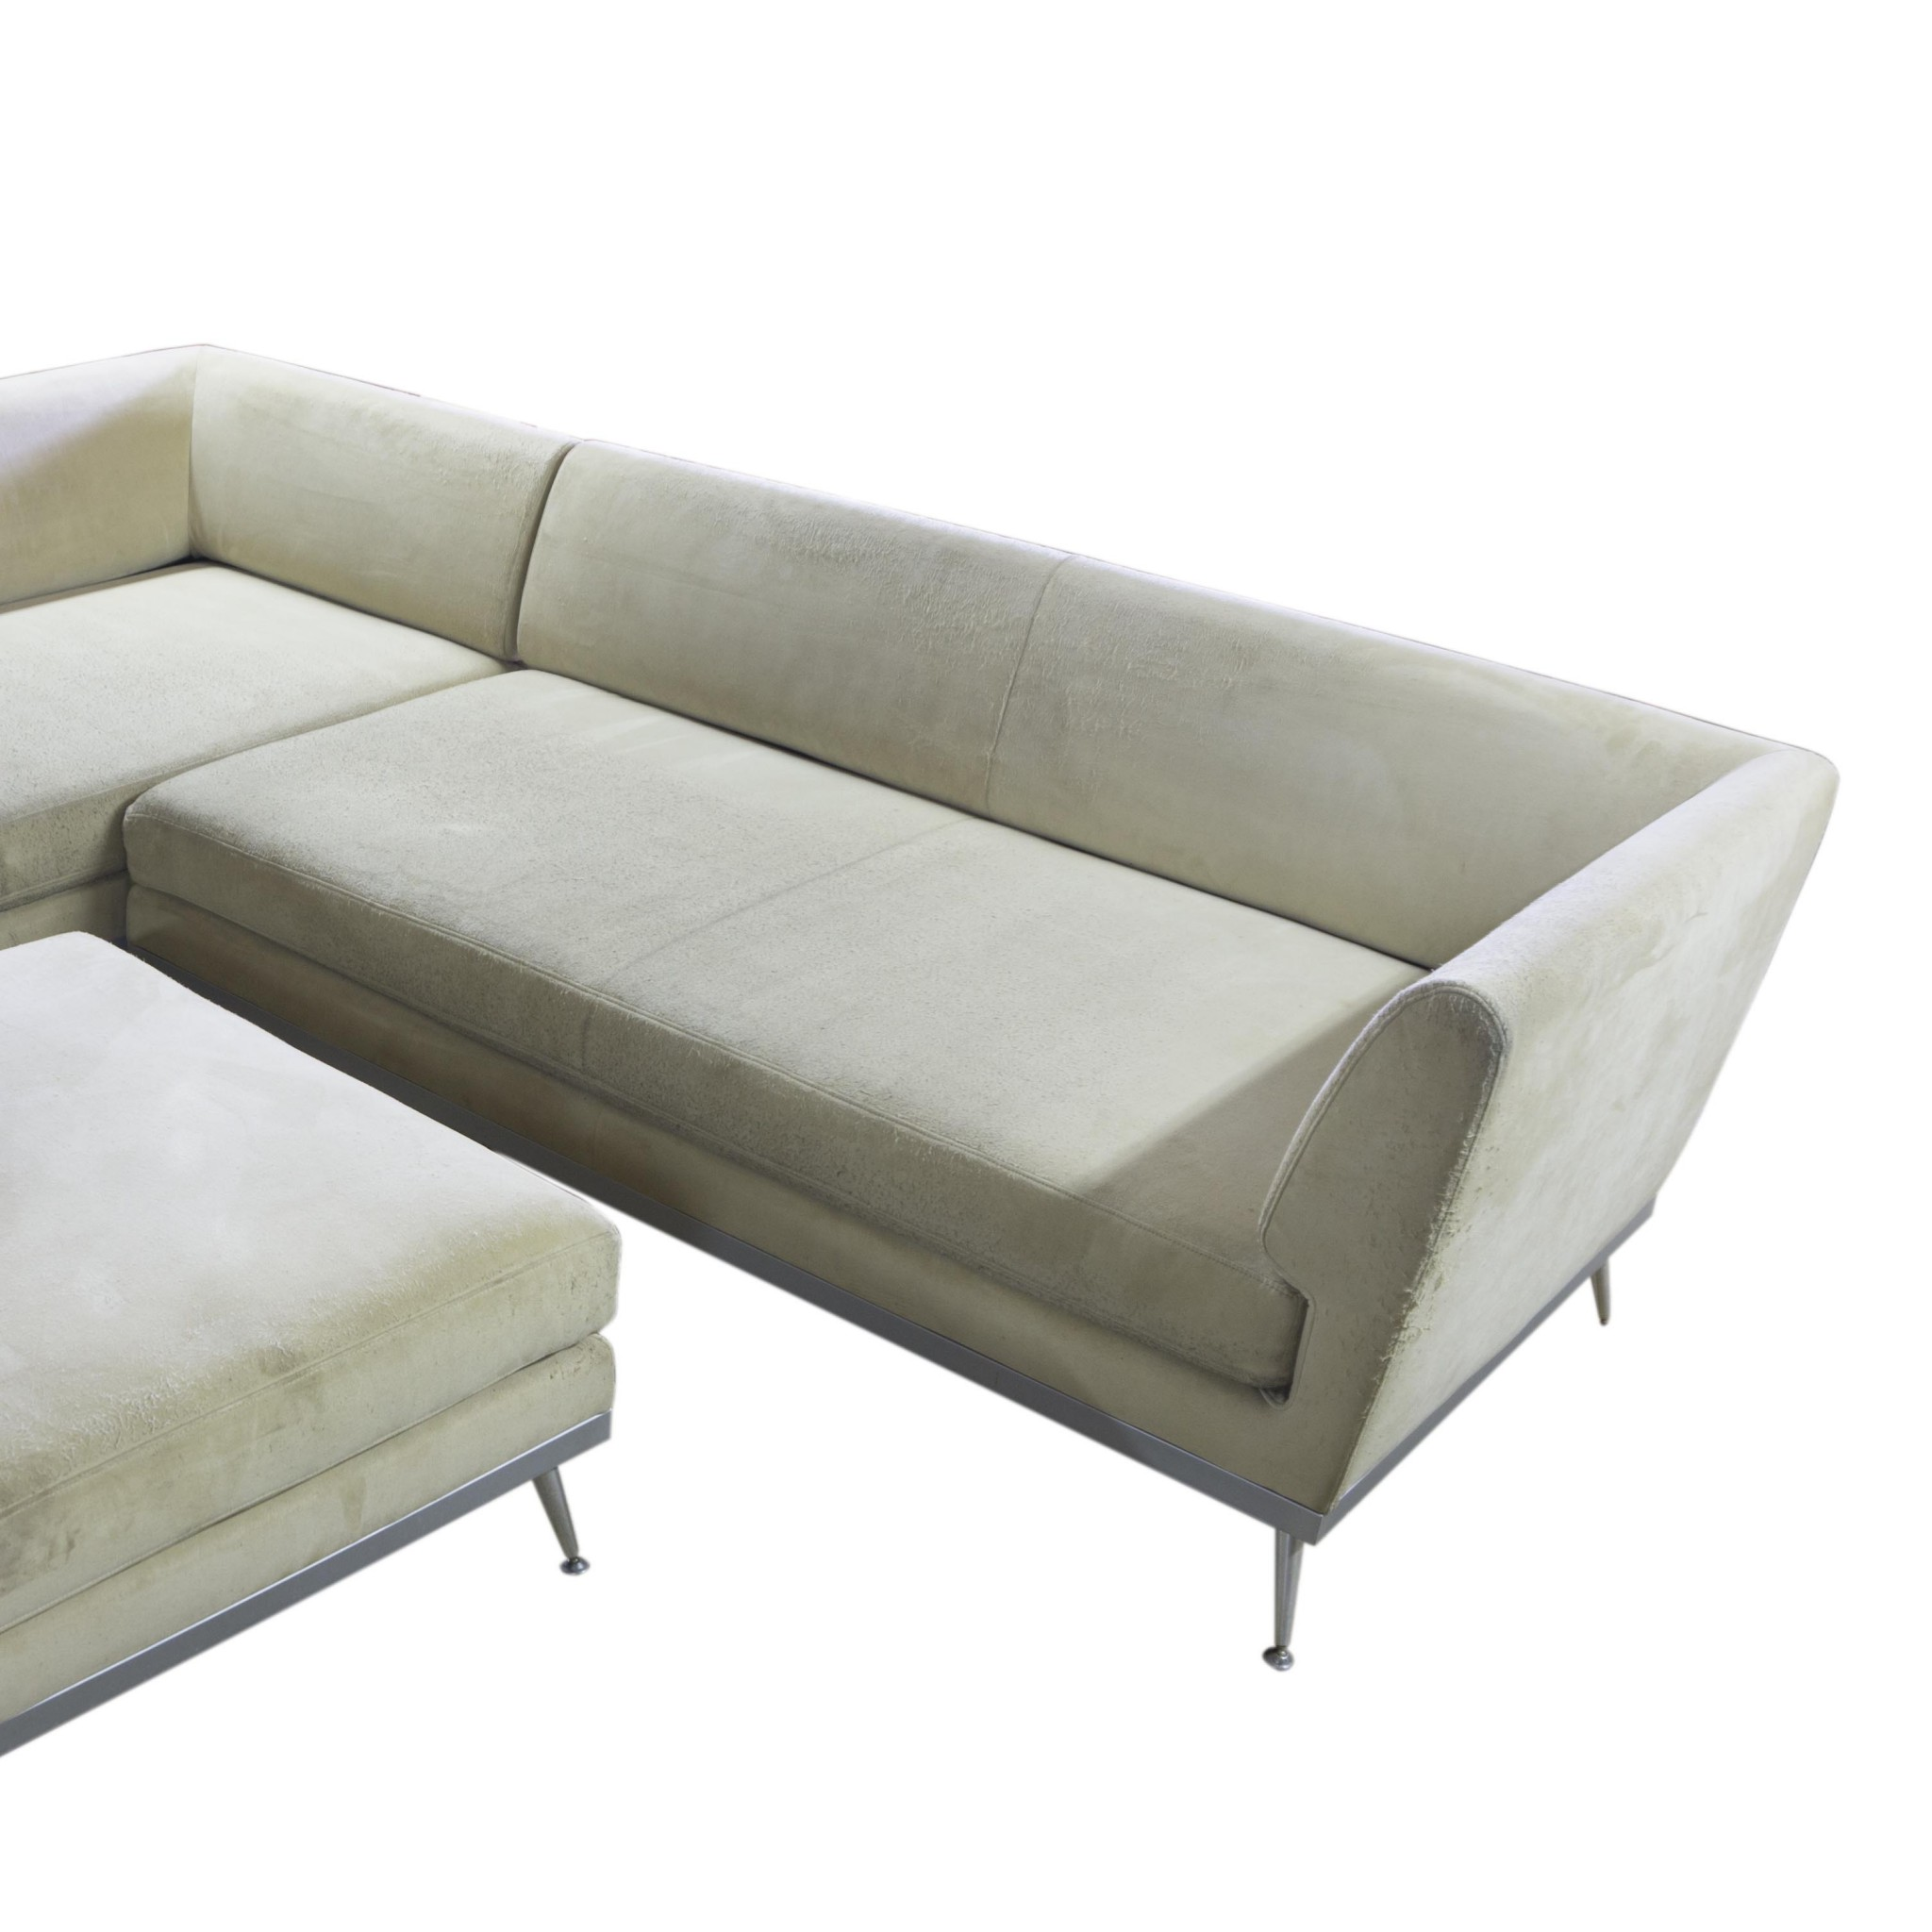 Modern corner sofa and footstool Ligne Roset France